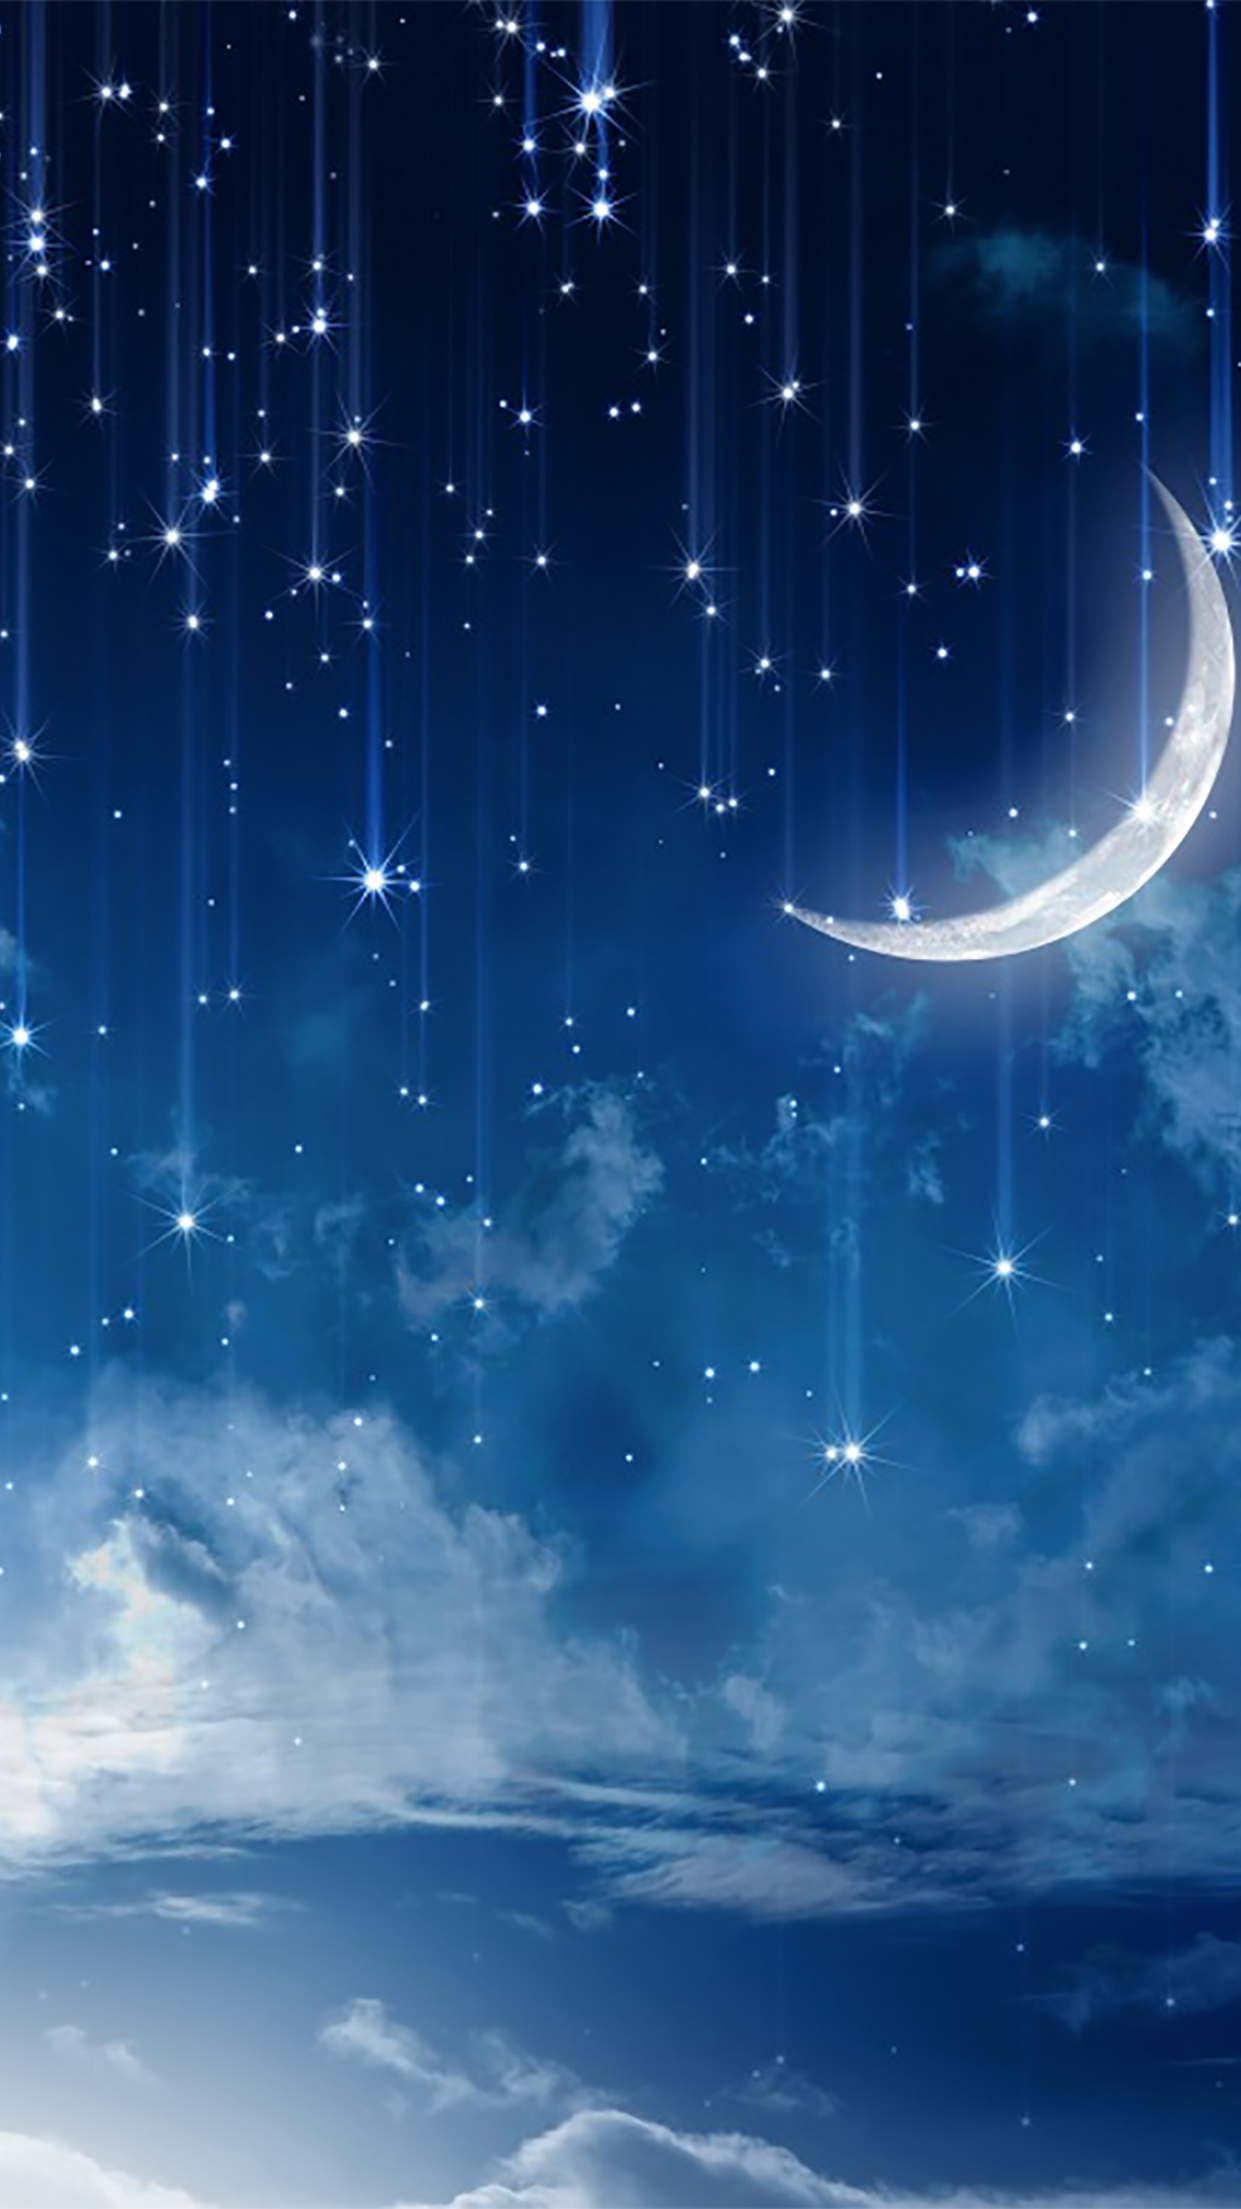 Cute Graffiti Wallpaper Sky Sky With Stars And Moon Wallpaper For Iphone X 8 7